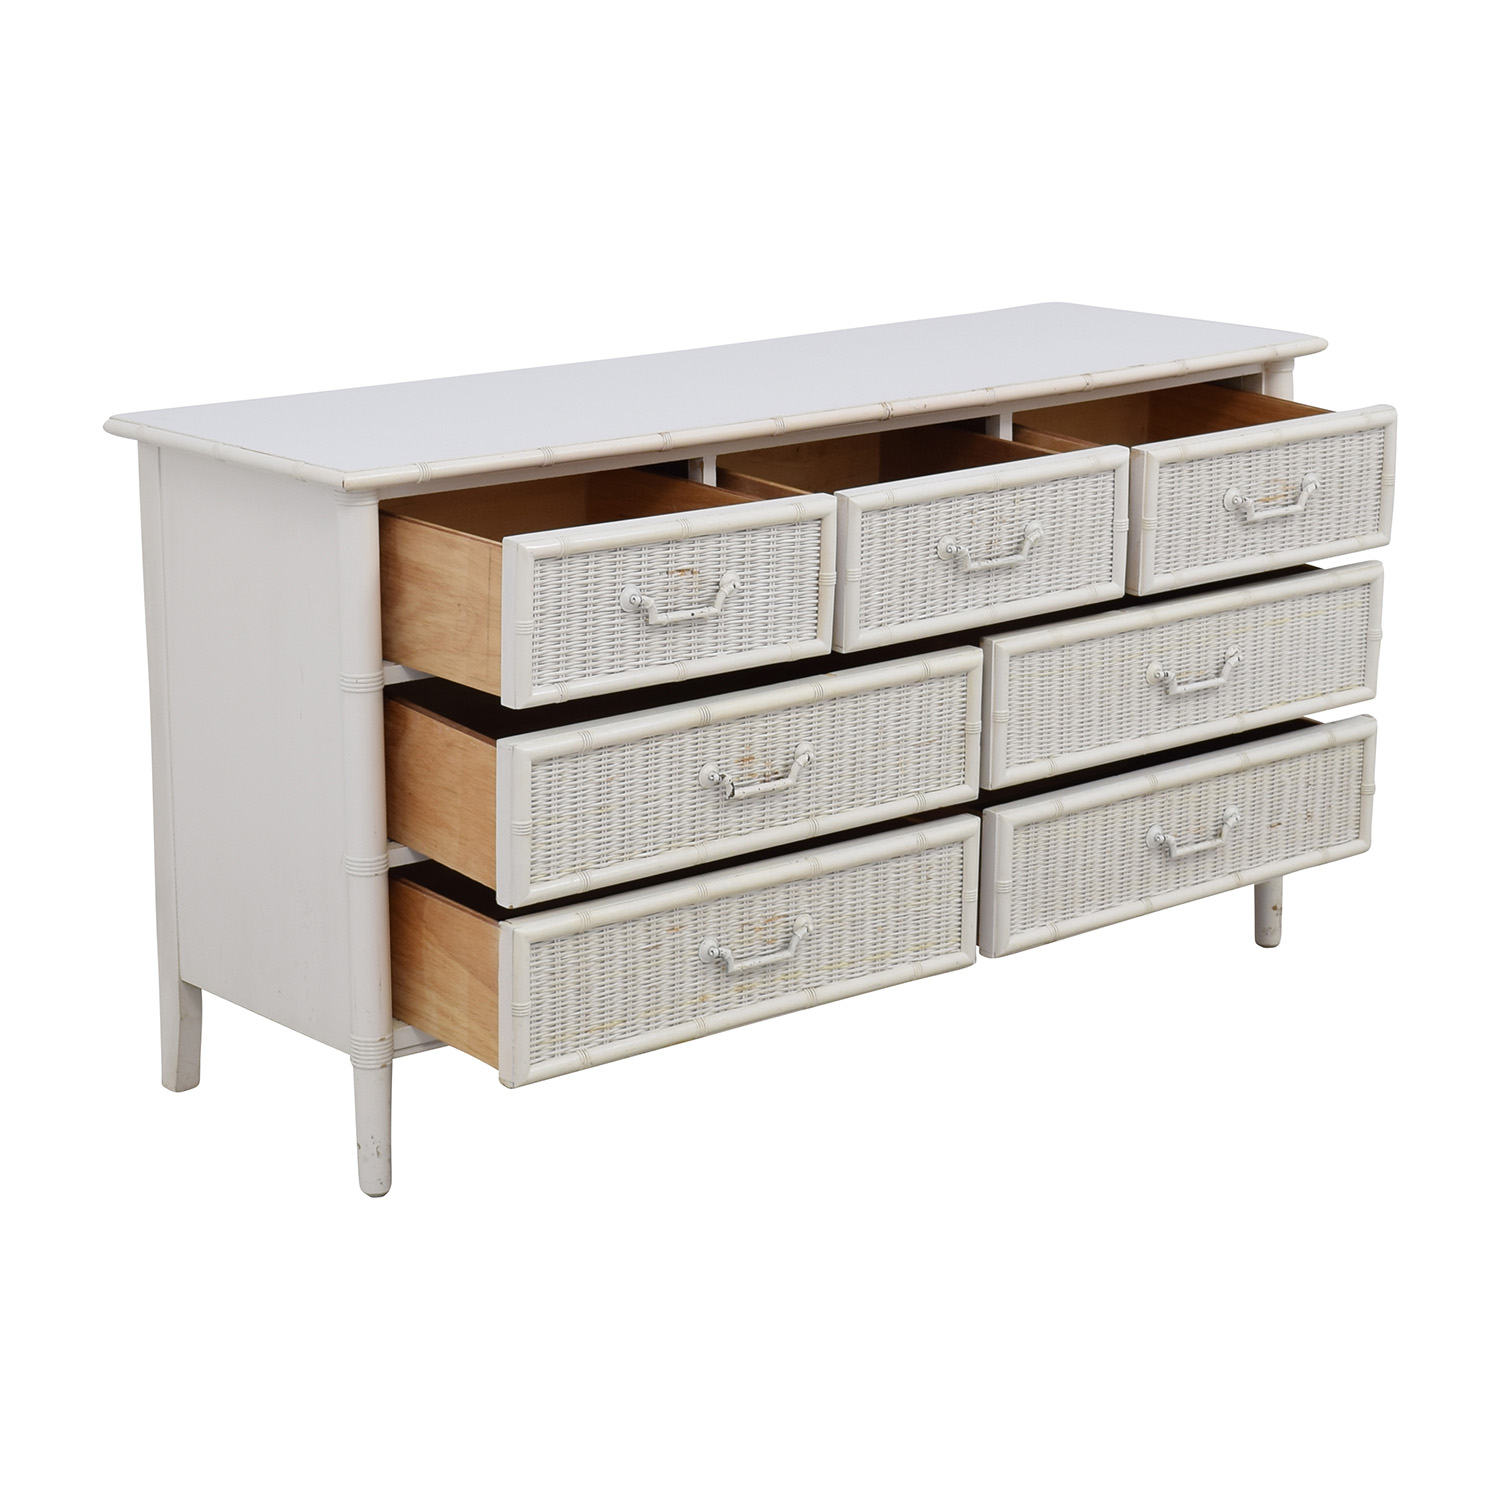 63% OFF - Dixie Furniture Company Dixie Vintage White Seven-Drawer Wicker  Dresser / Storage